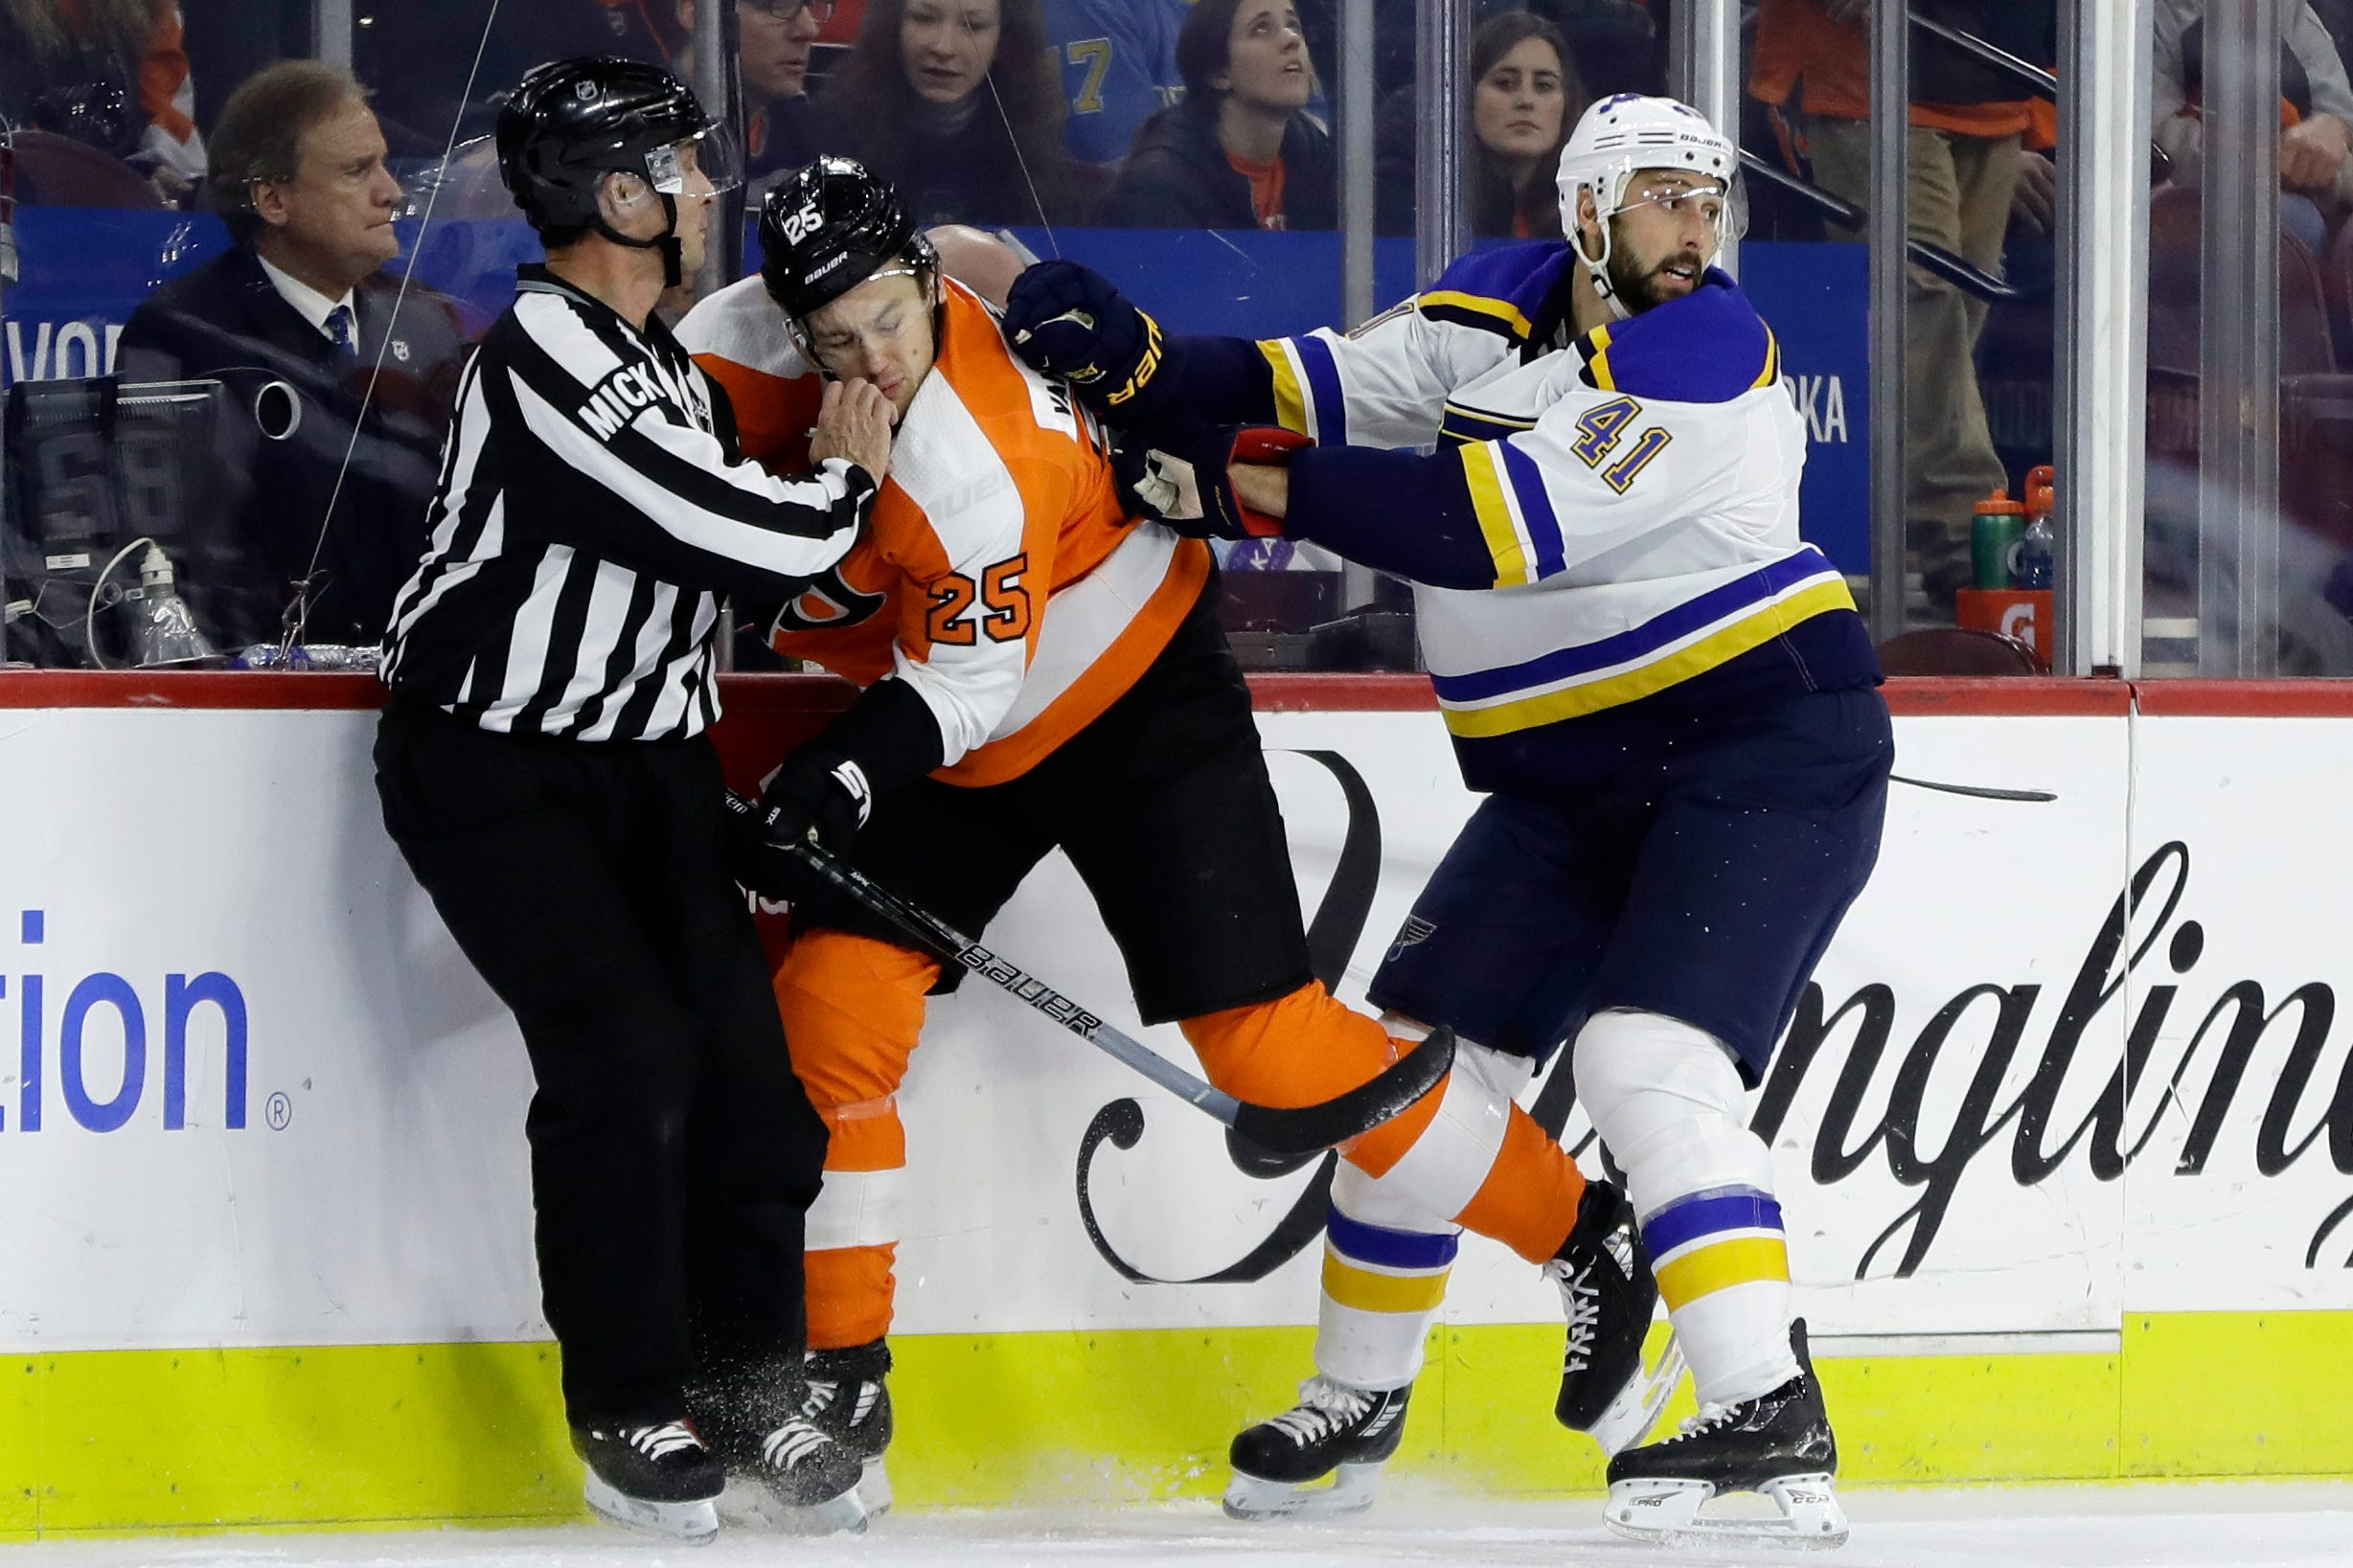 Blues send Philadelphia Flyers to 7th straight loss, 3-0